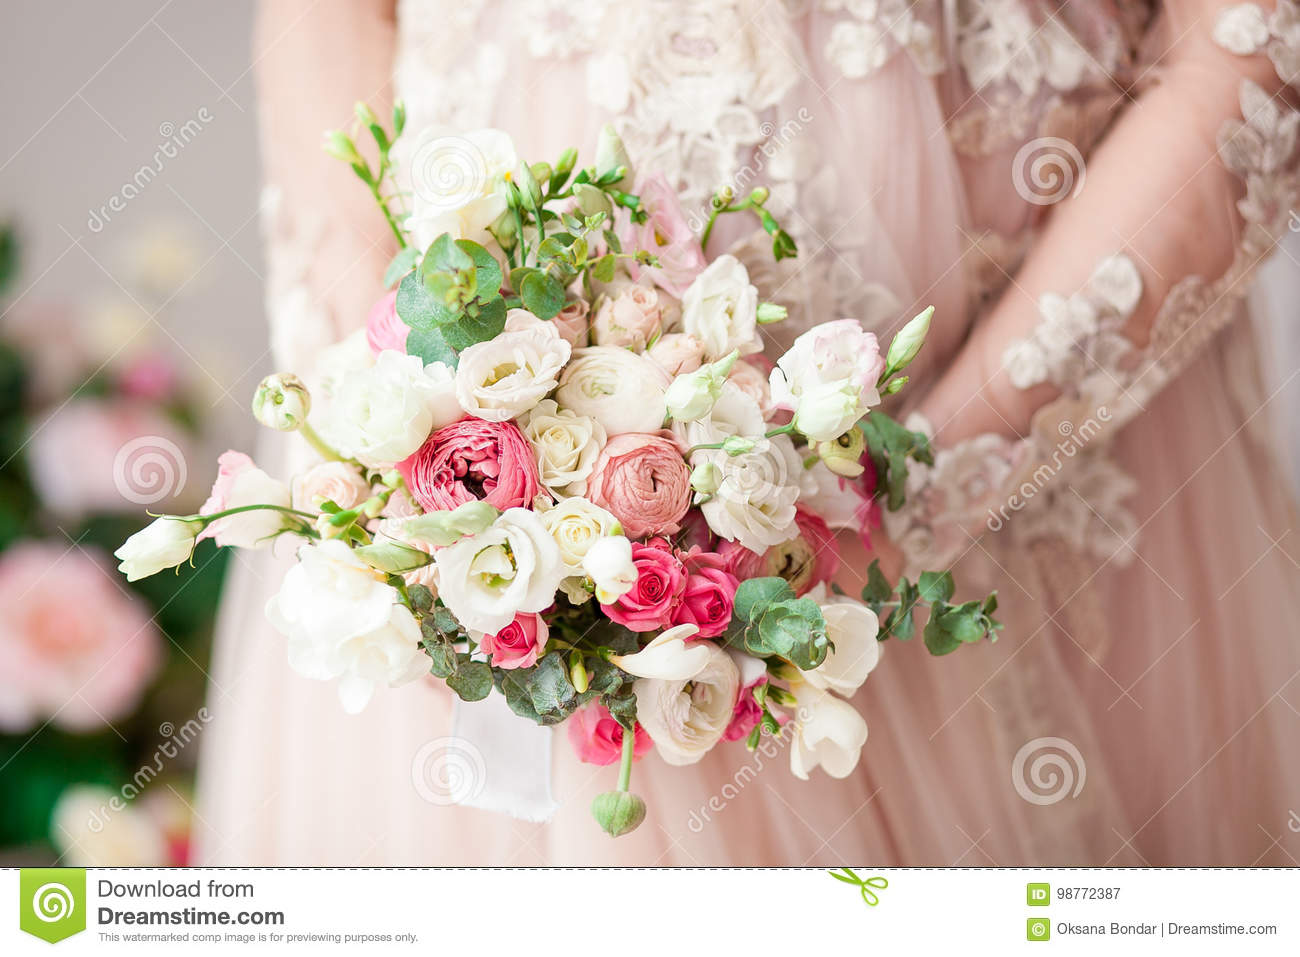 Pregnant girl in a beige dress with a bouquet in hands. Natural. Waiting for a miracle.